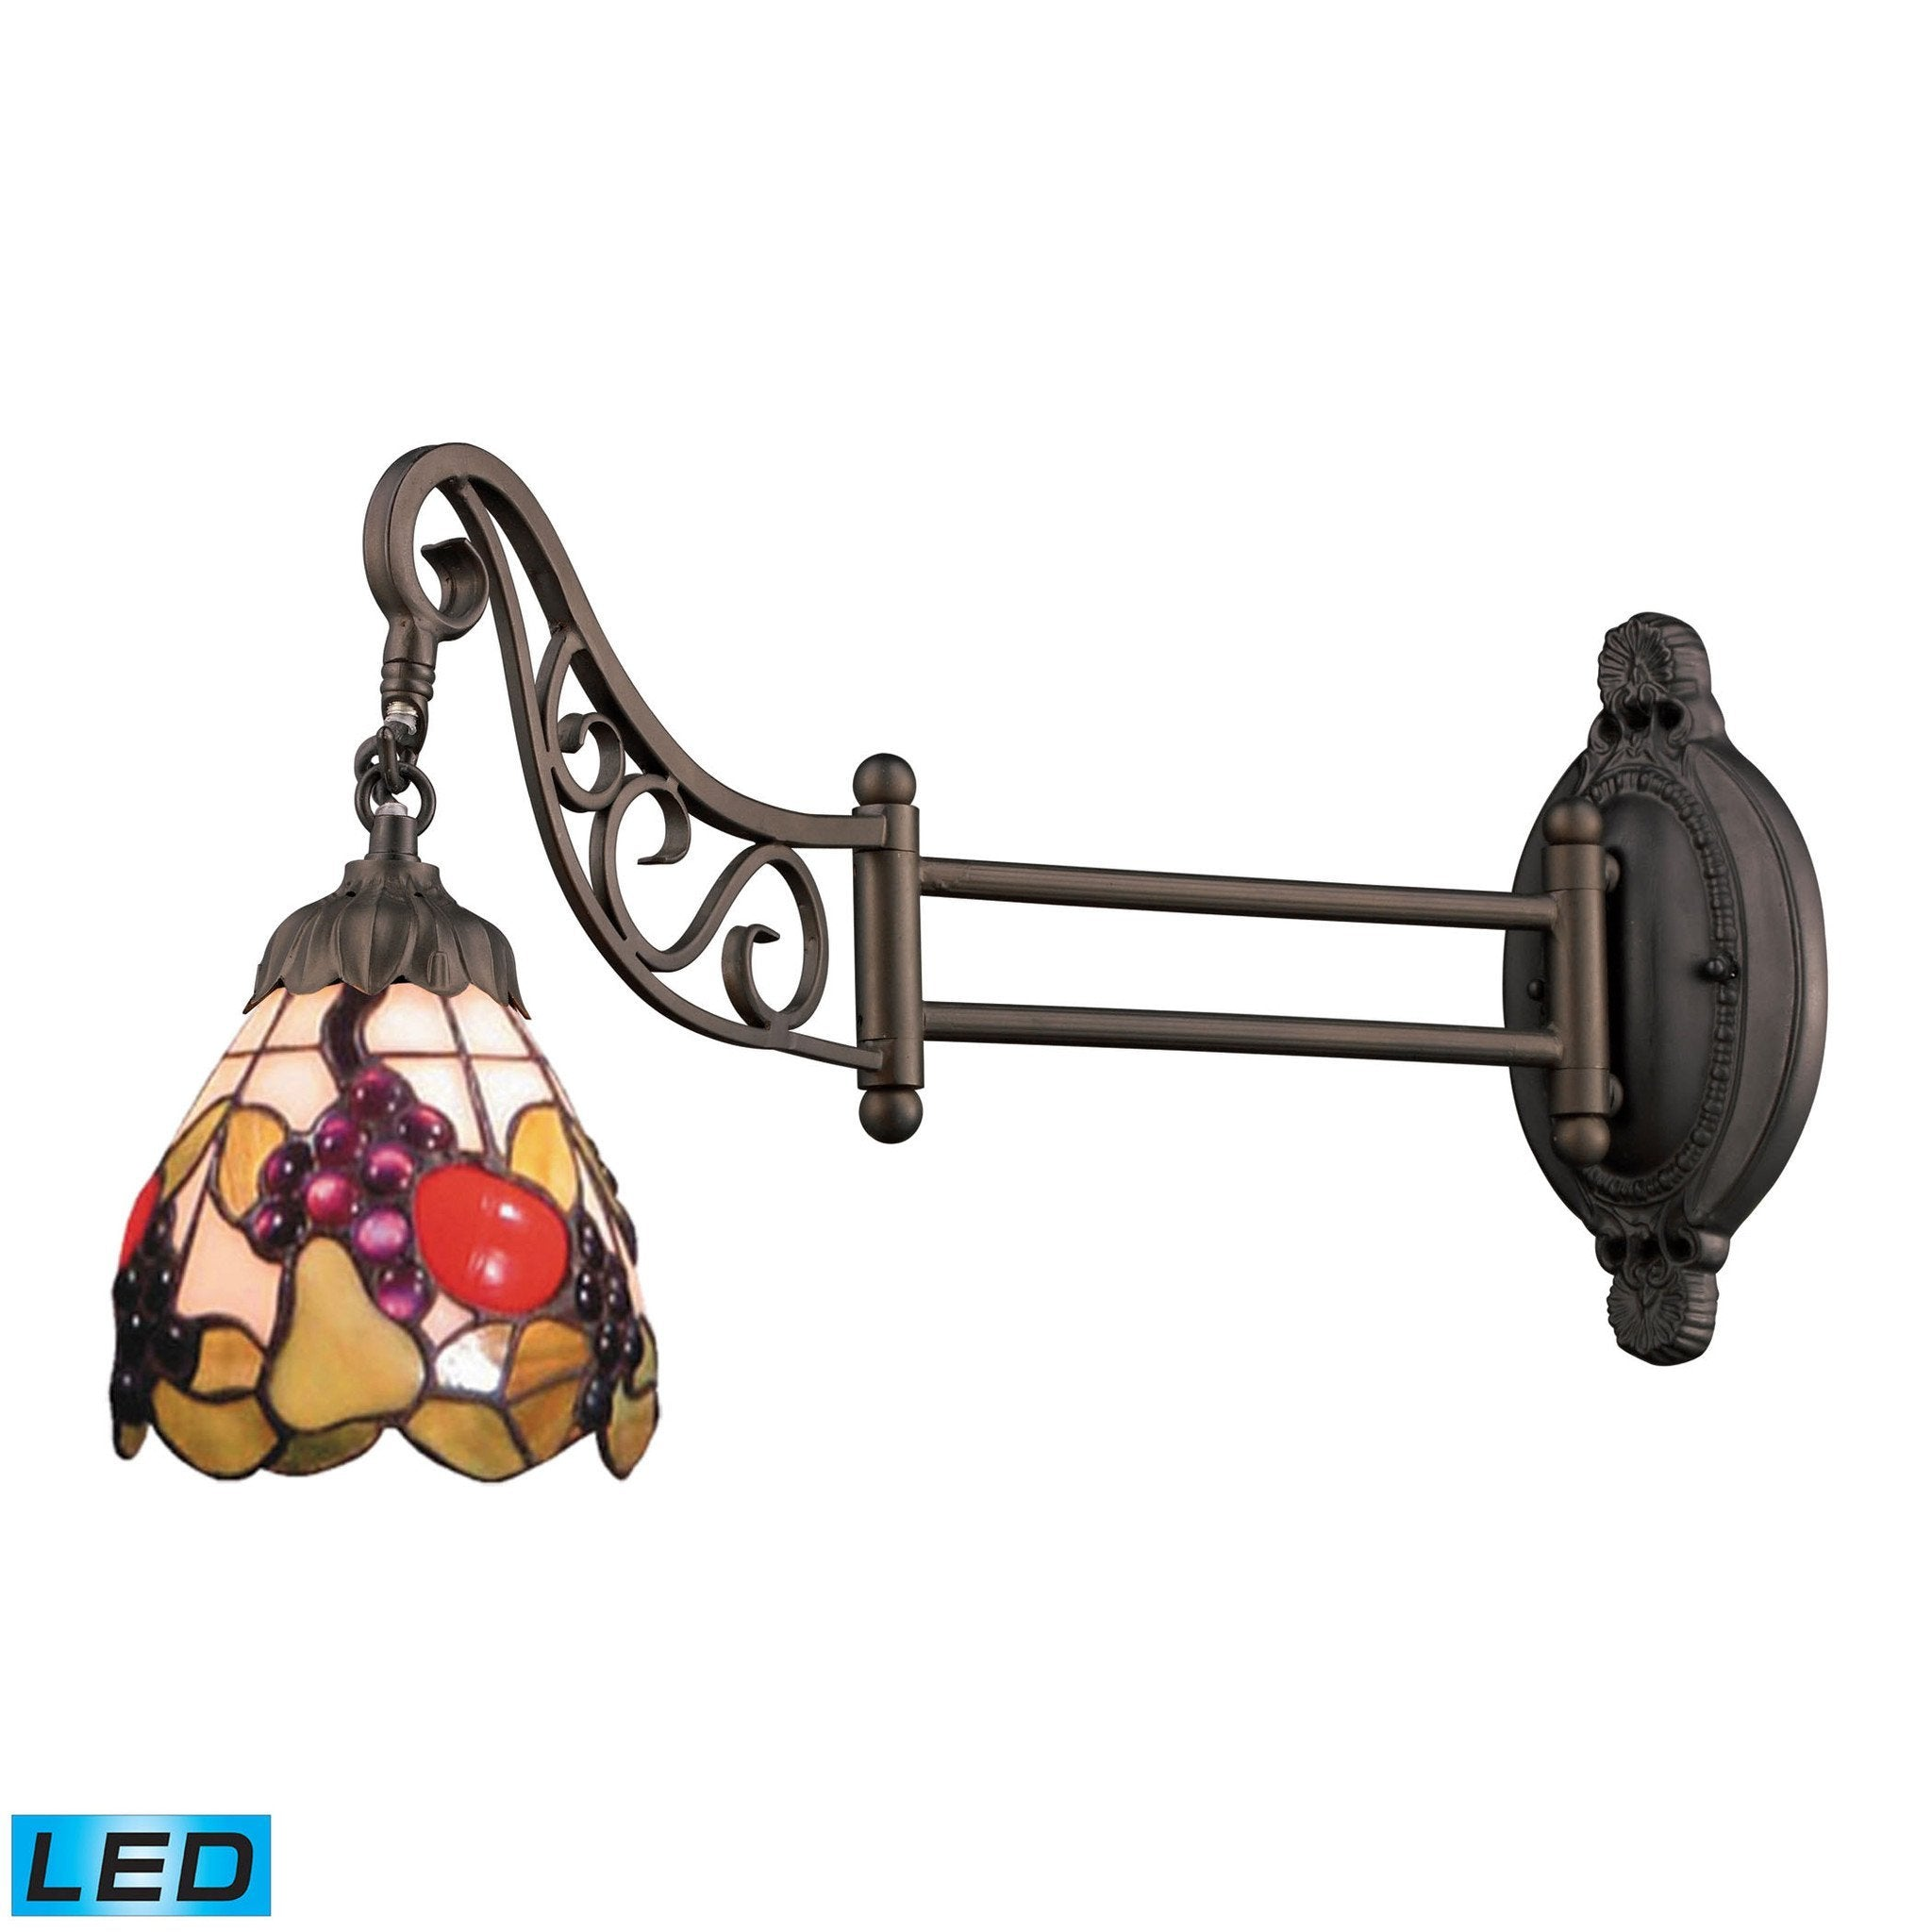 ELK Lighting 079-TB-19-LED Mix-N-Match Collection Tiffany Bronze Finish